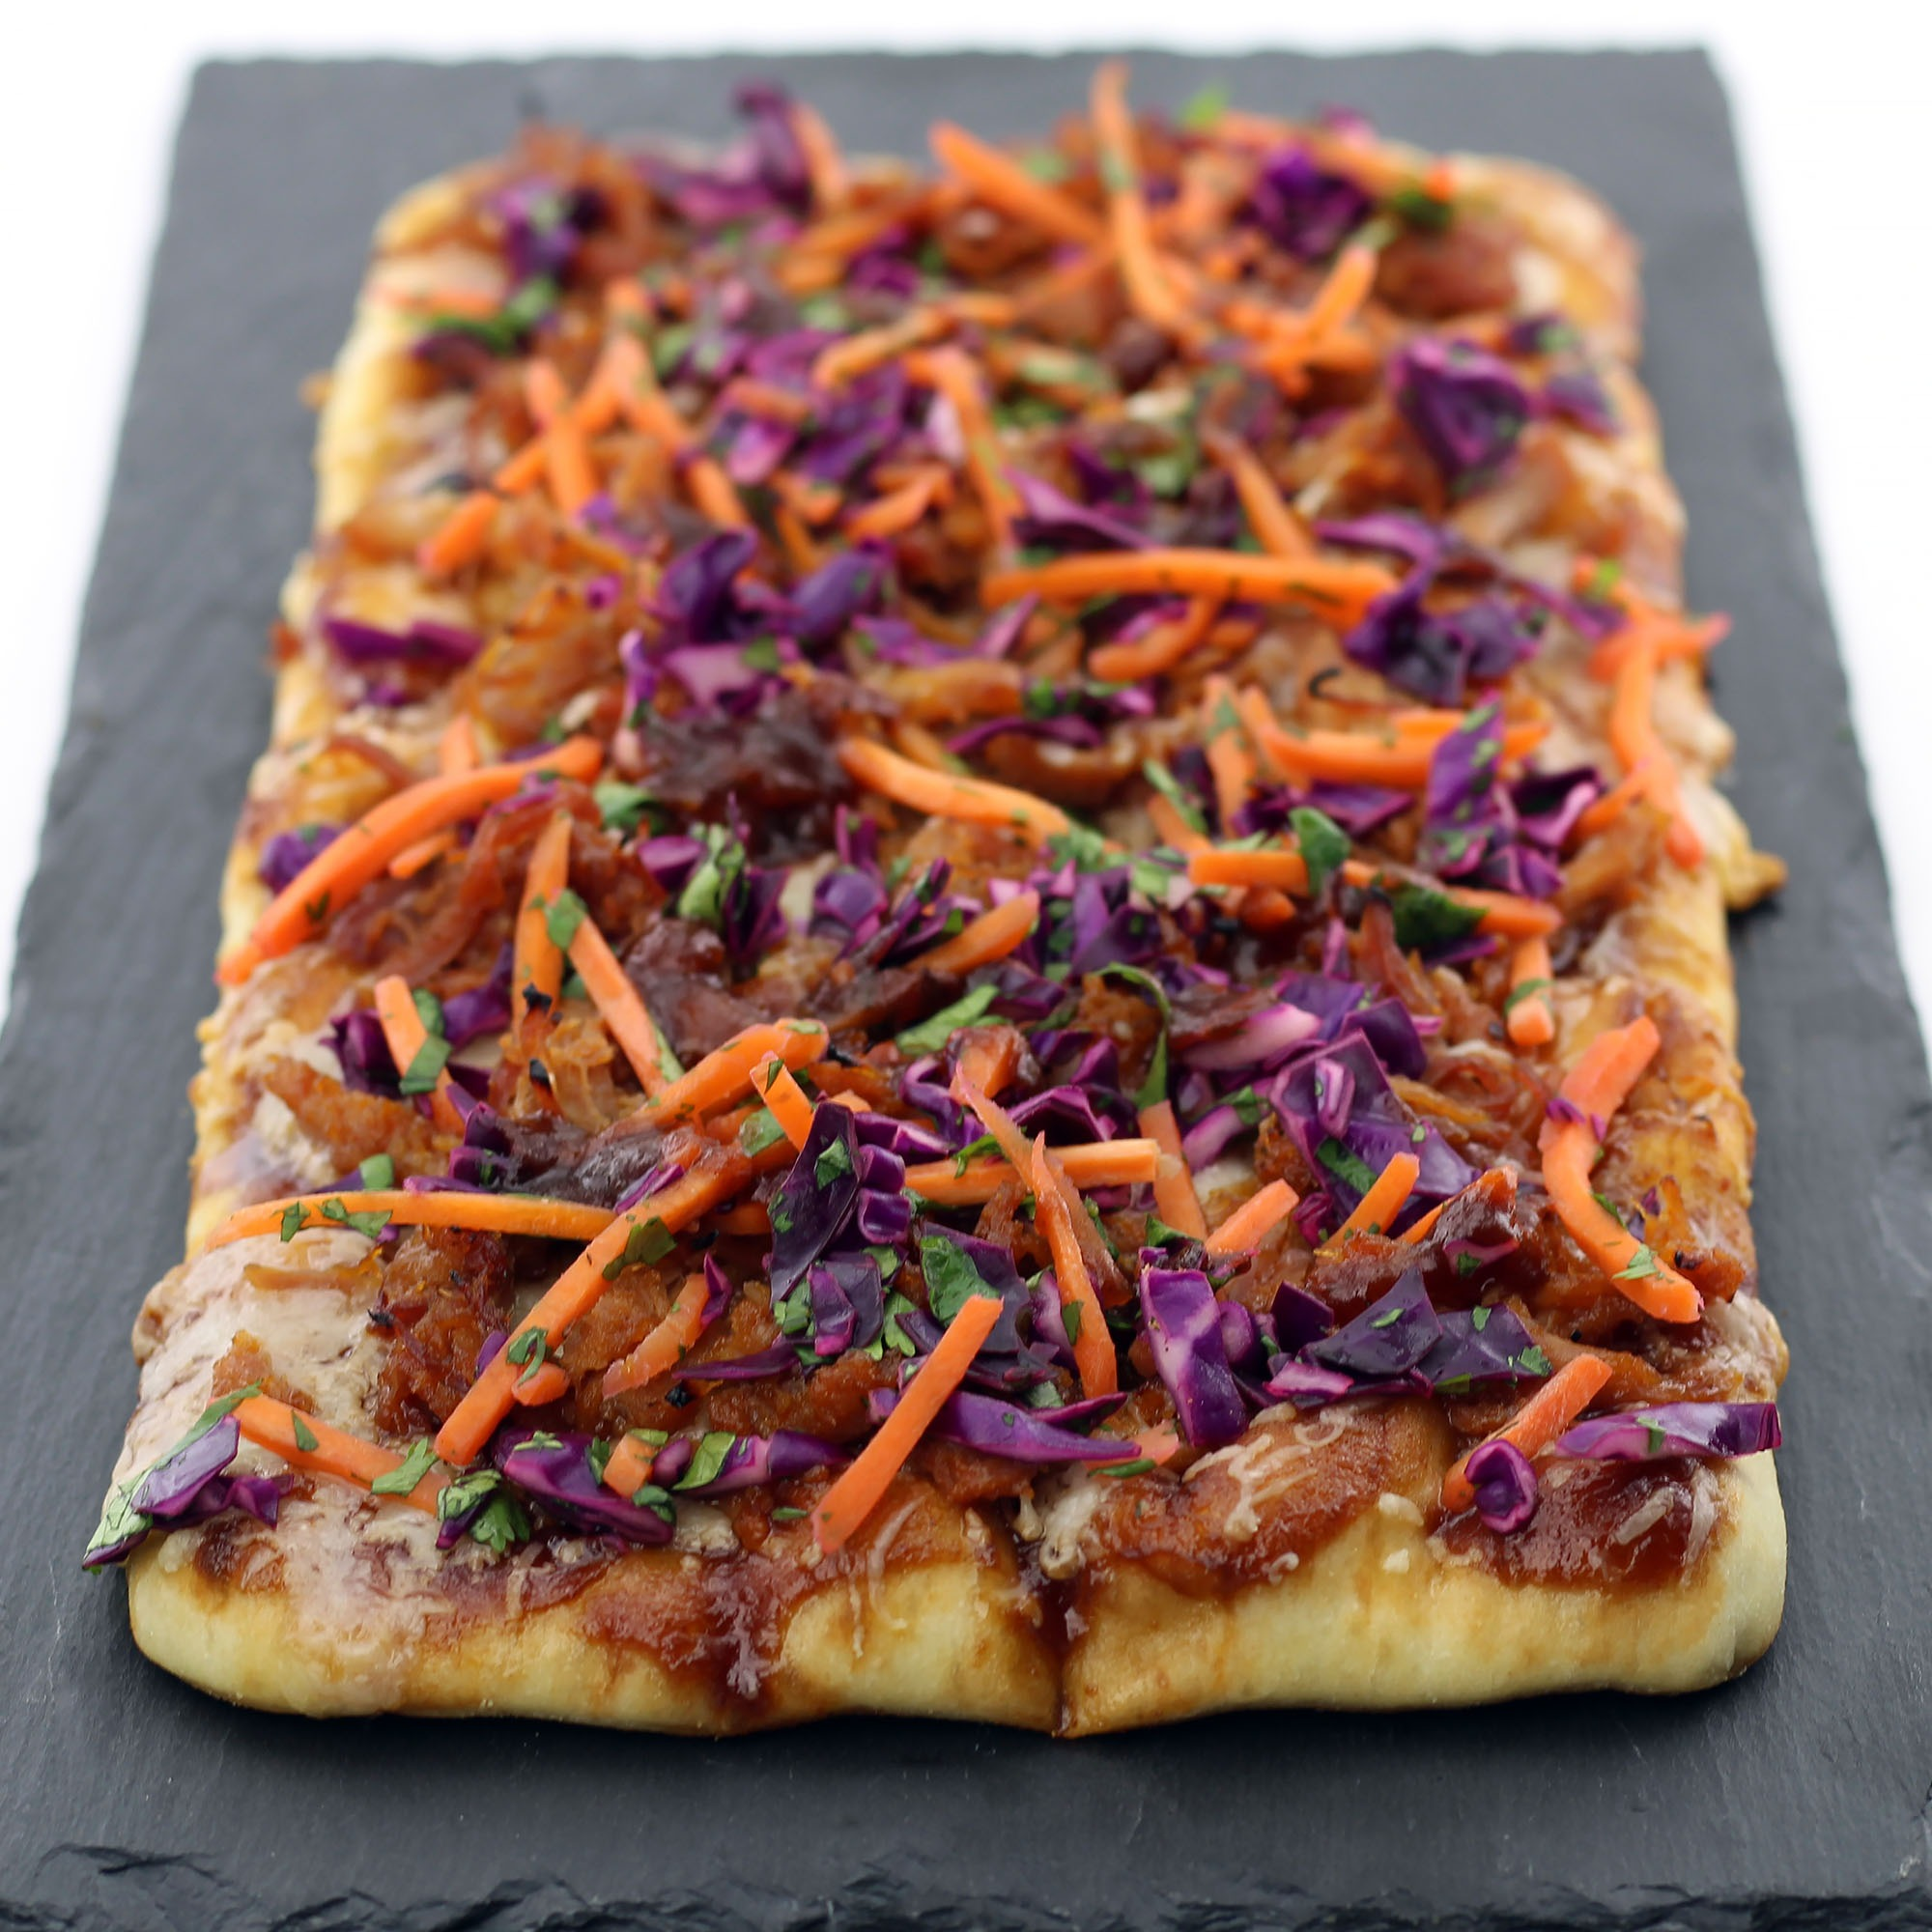 Pulled Pork Flatbreads